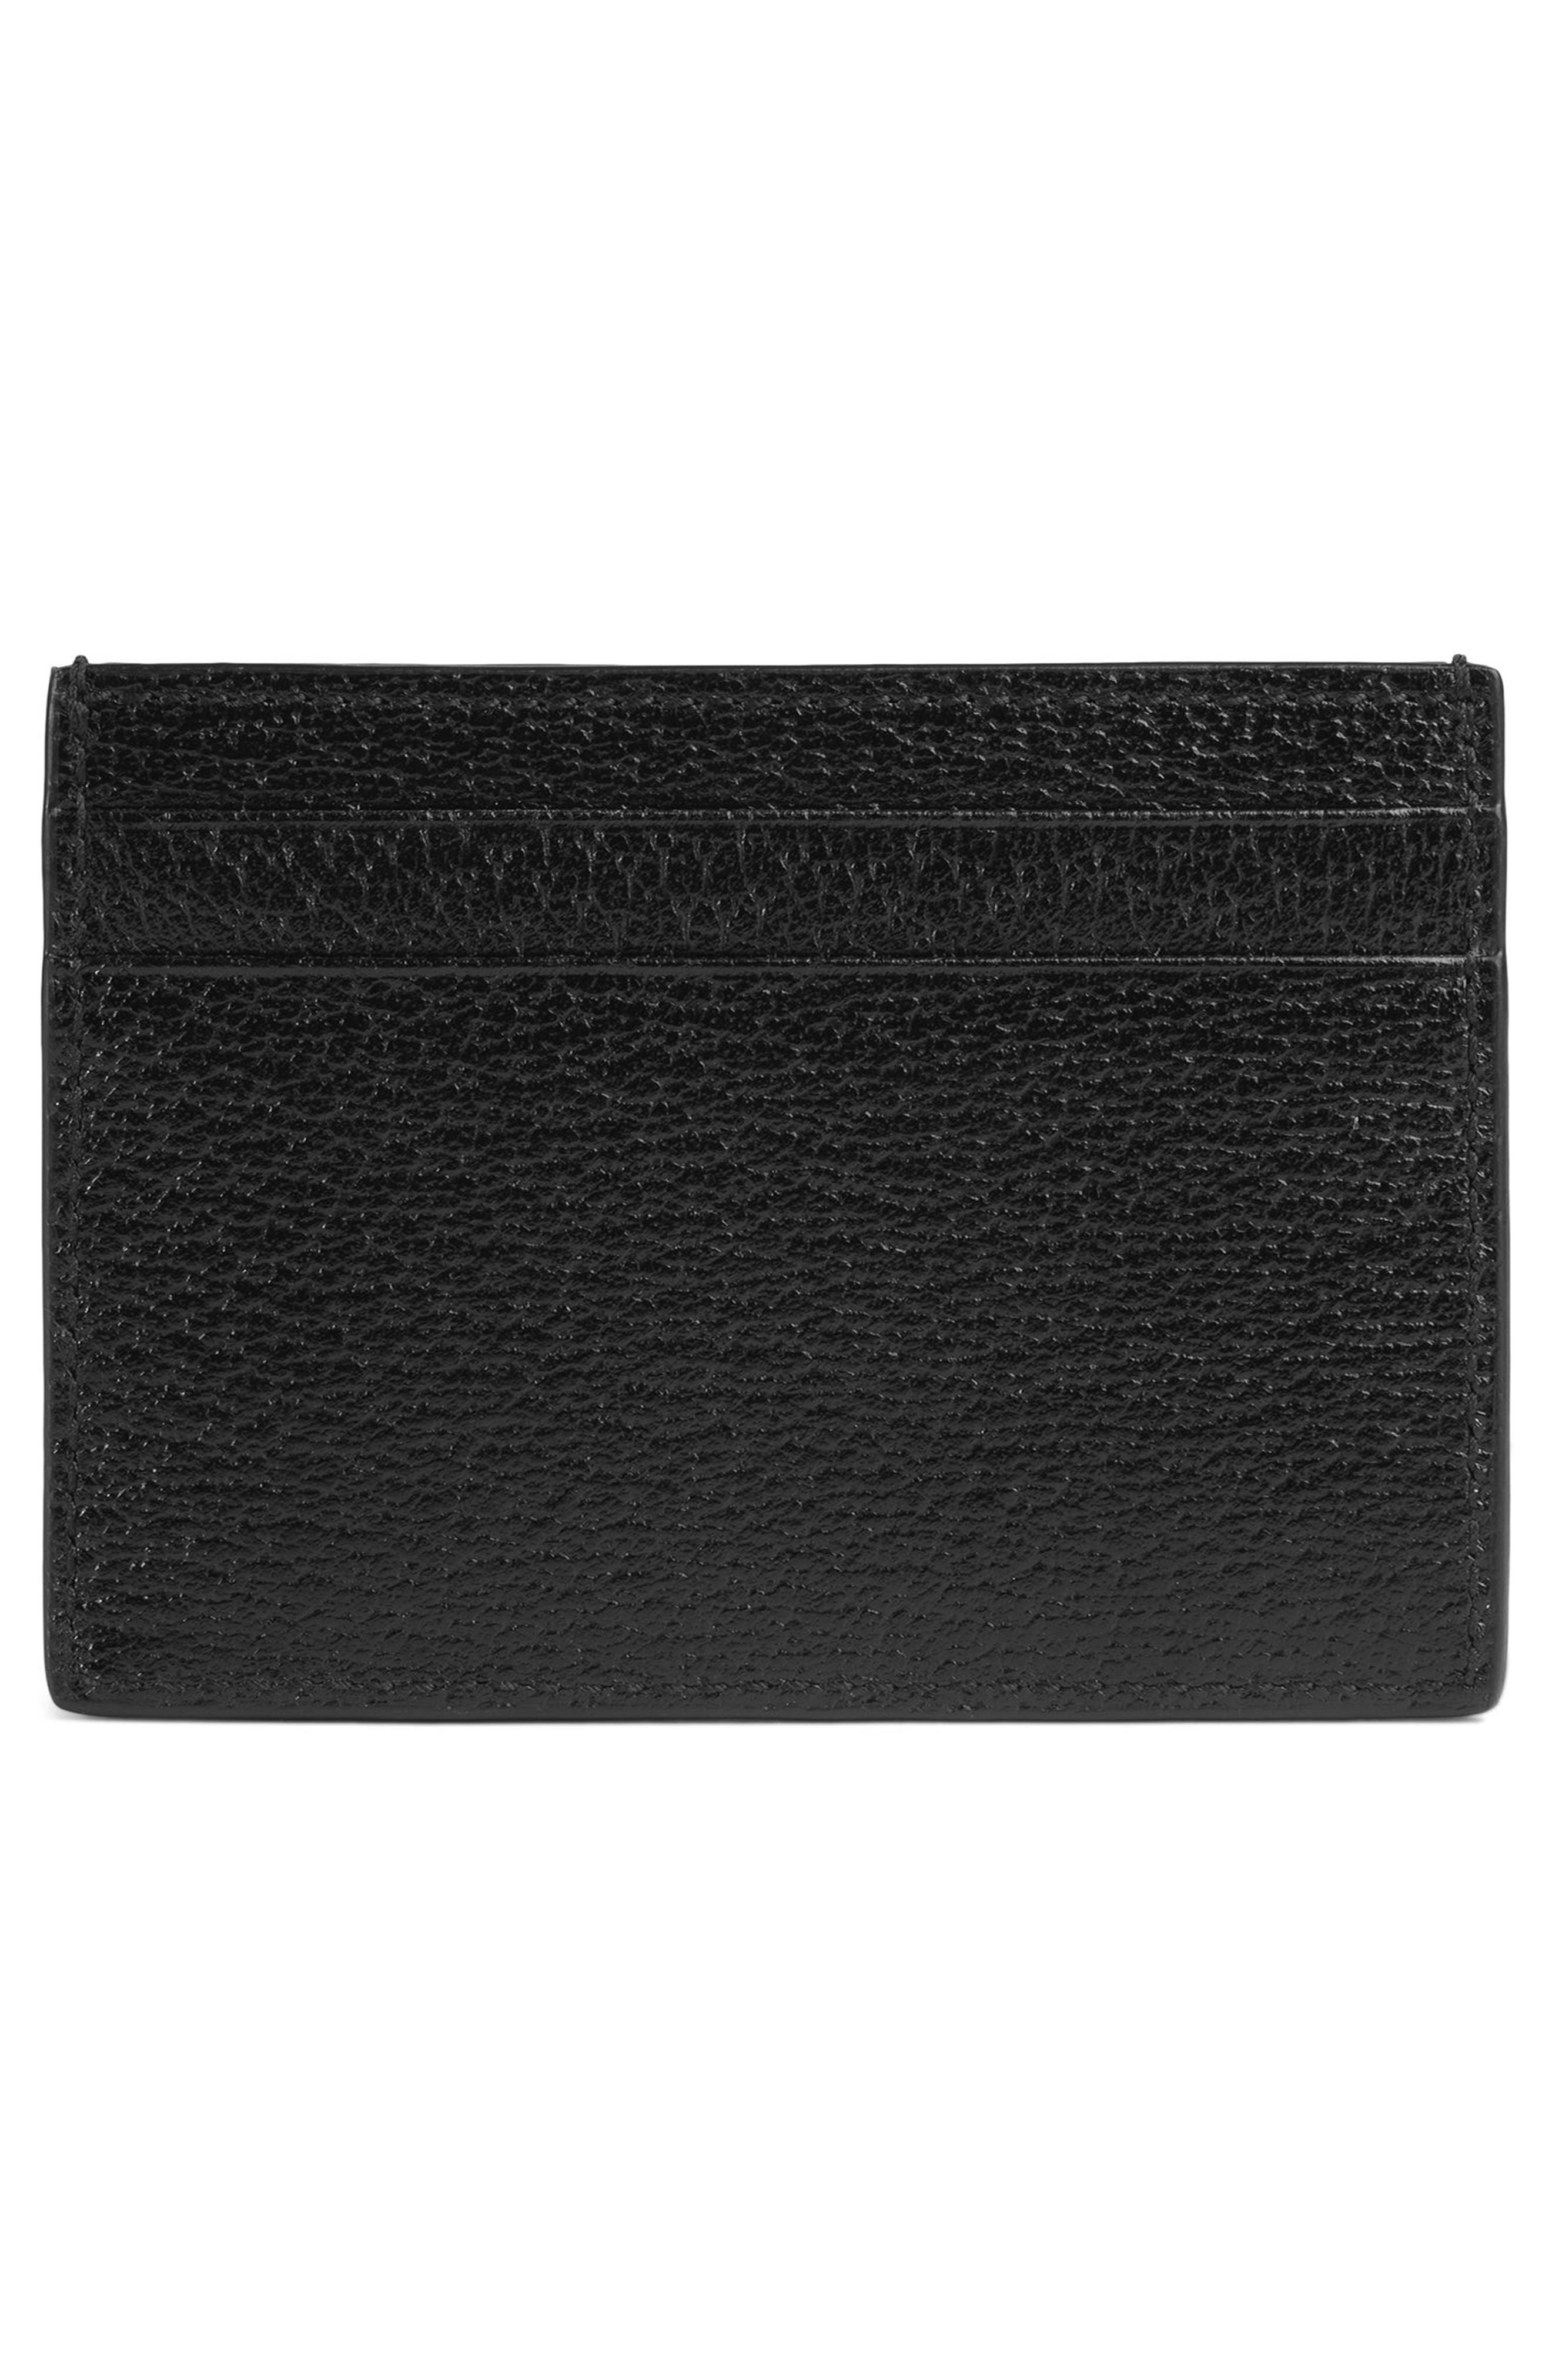 Bee Leather Card Case,                             Alternate thumbnail 3, color,